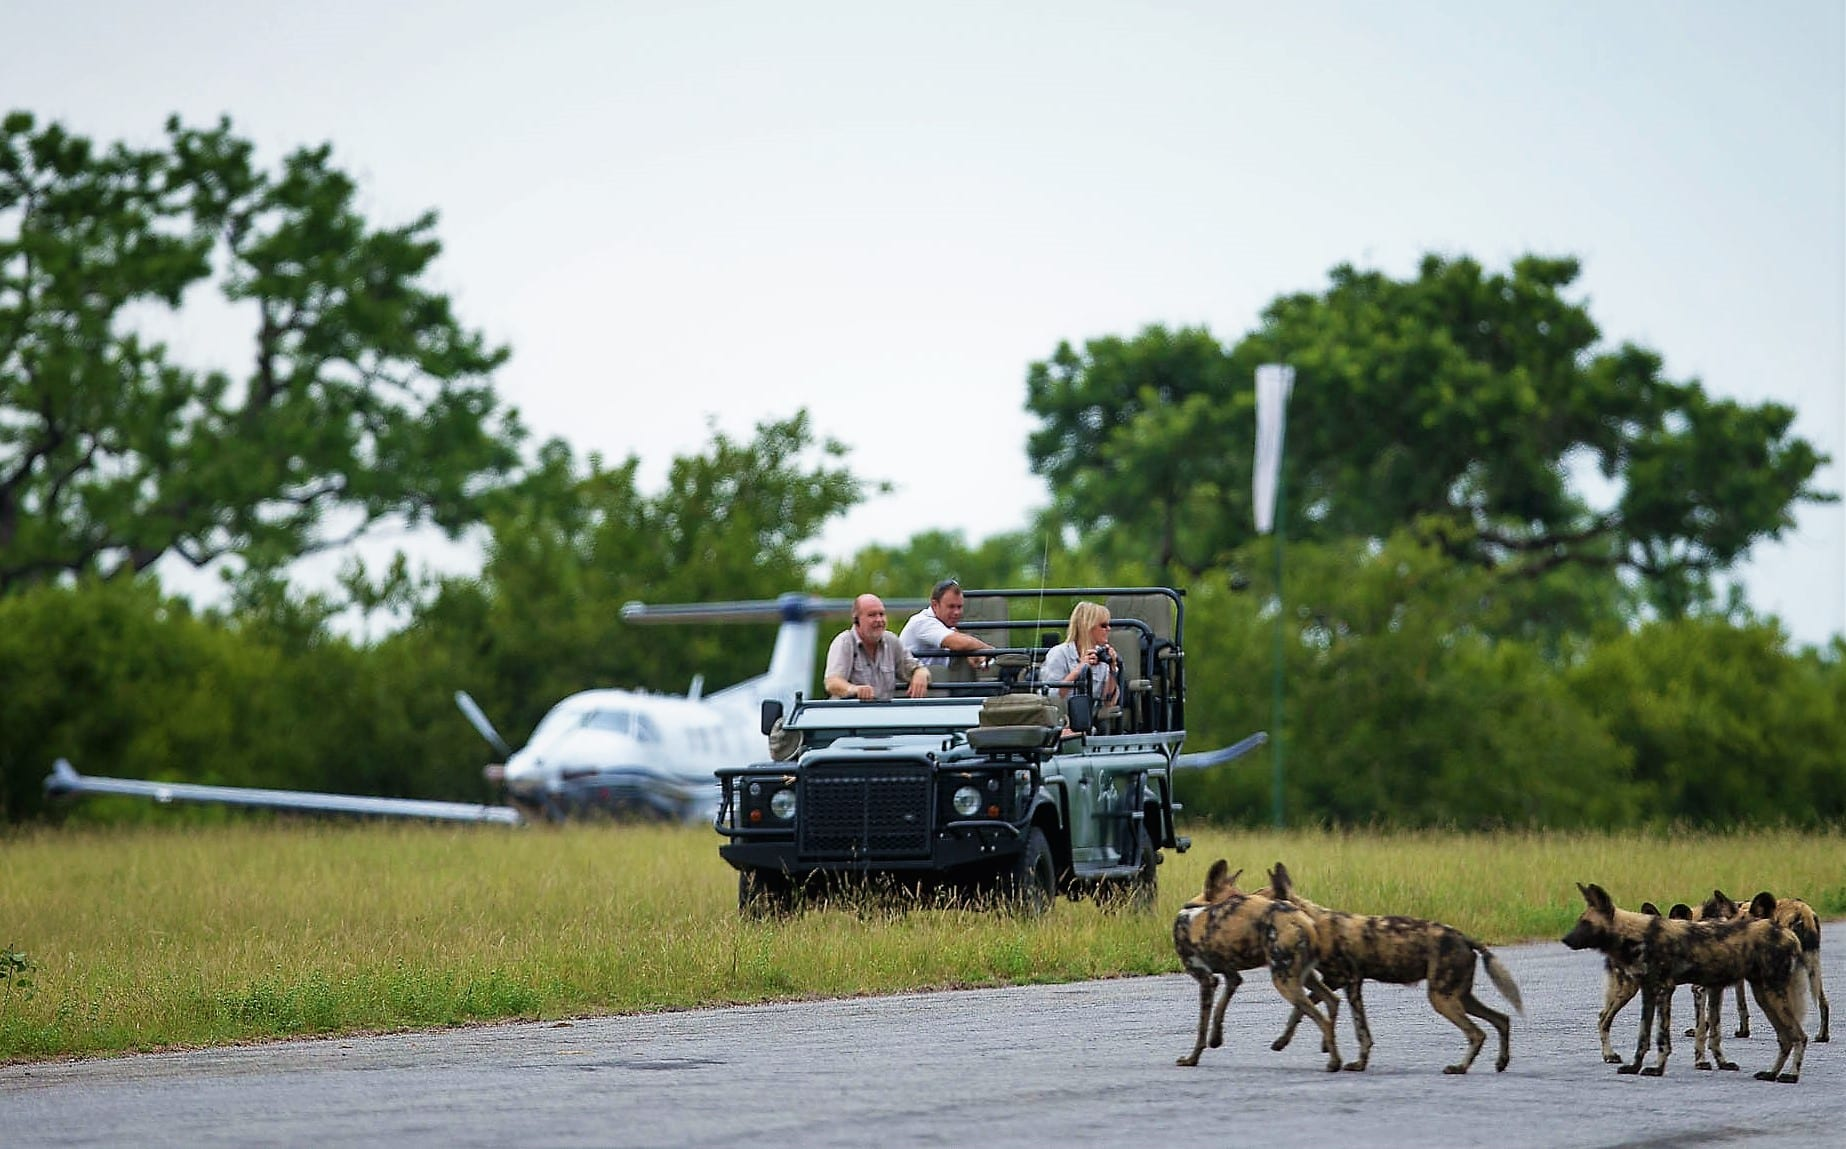 Wild dog on runway at Singita